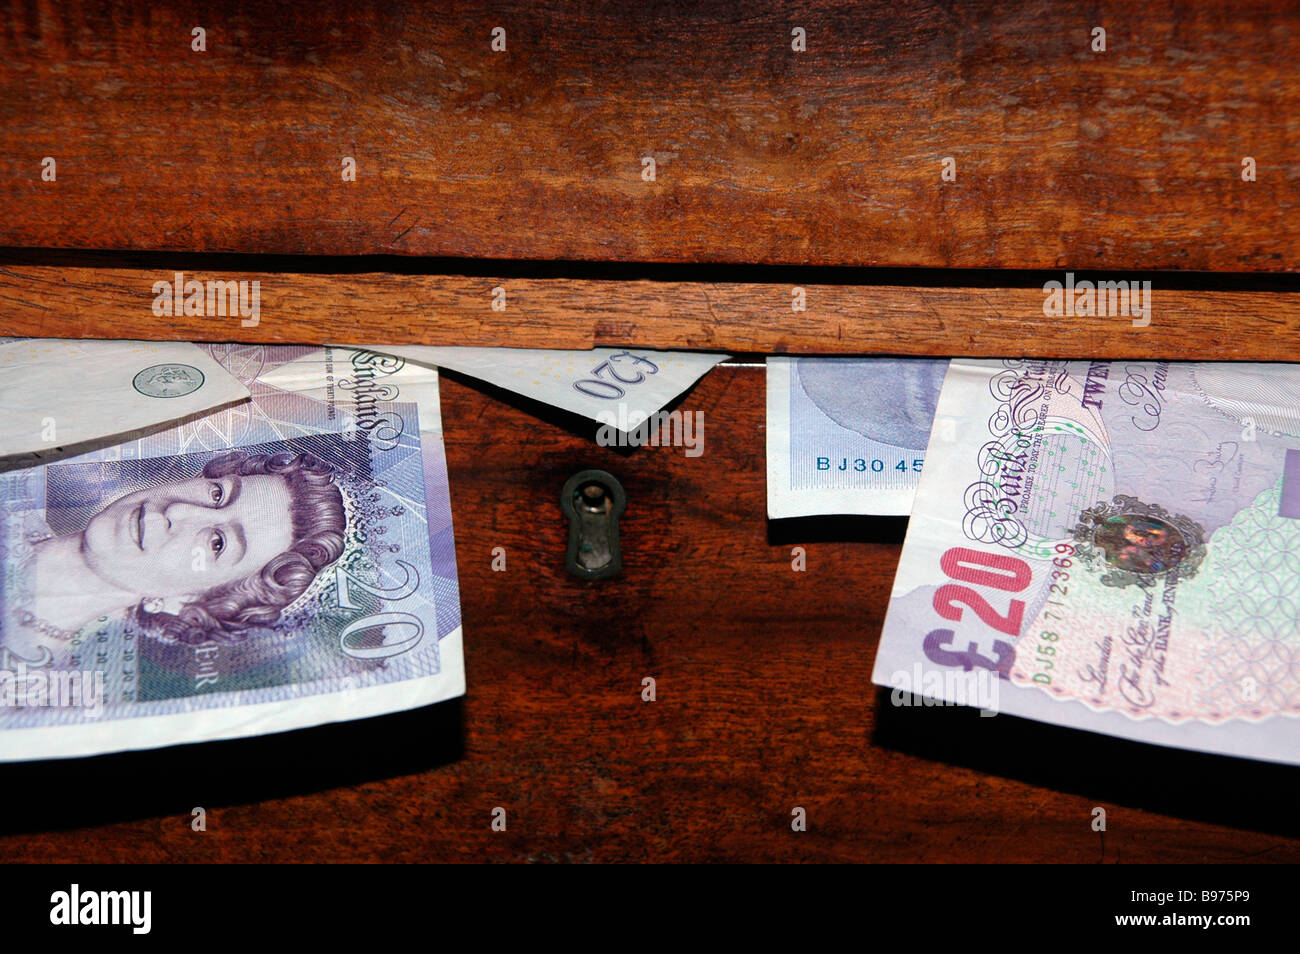 A locked drawer with 20 pound notes bulging out. - Stock Image